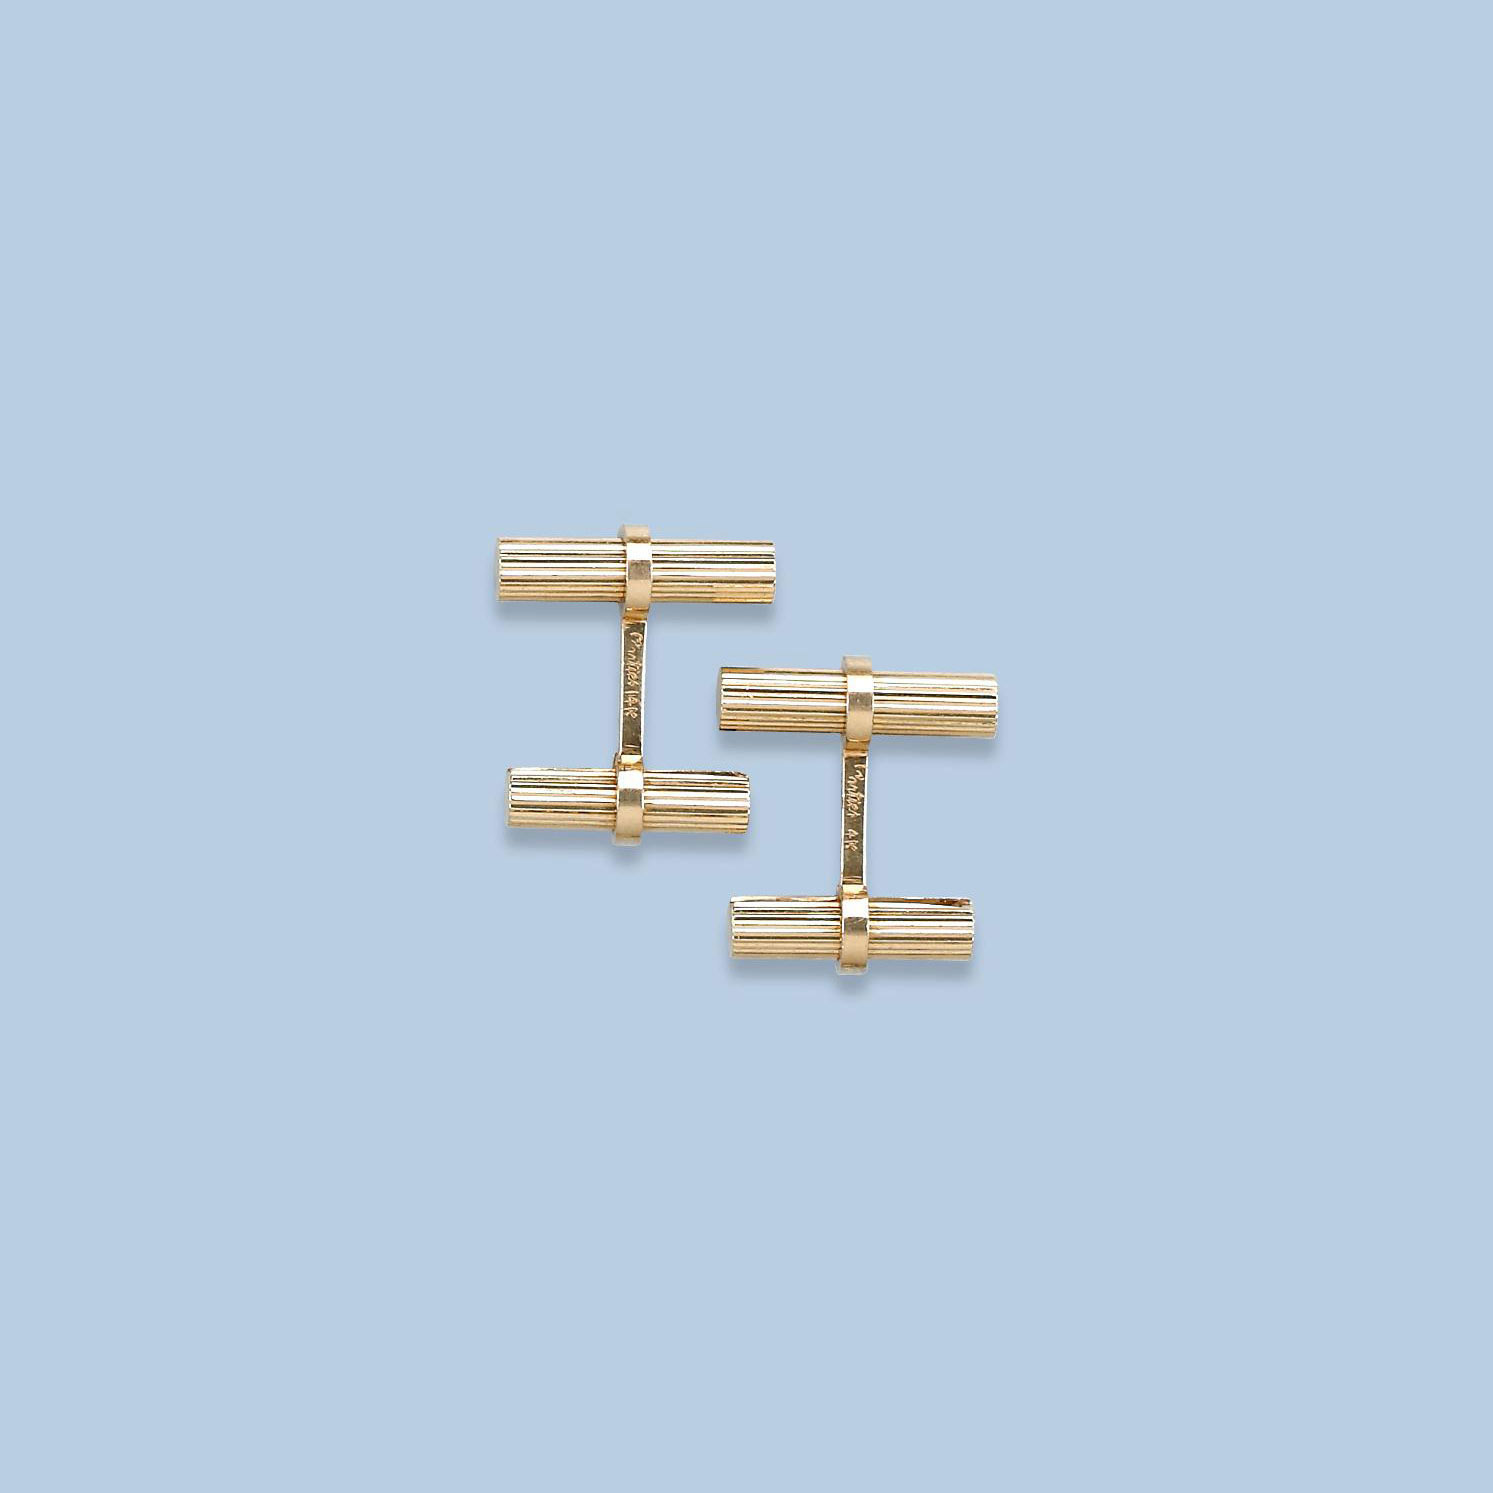 A PAIR OF GOLD CUFF LINKS, BY